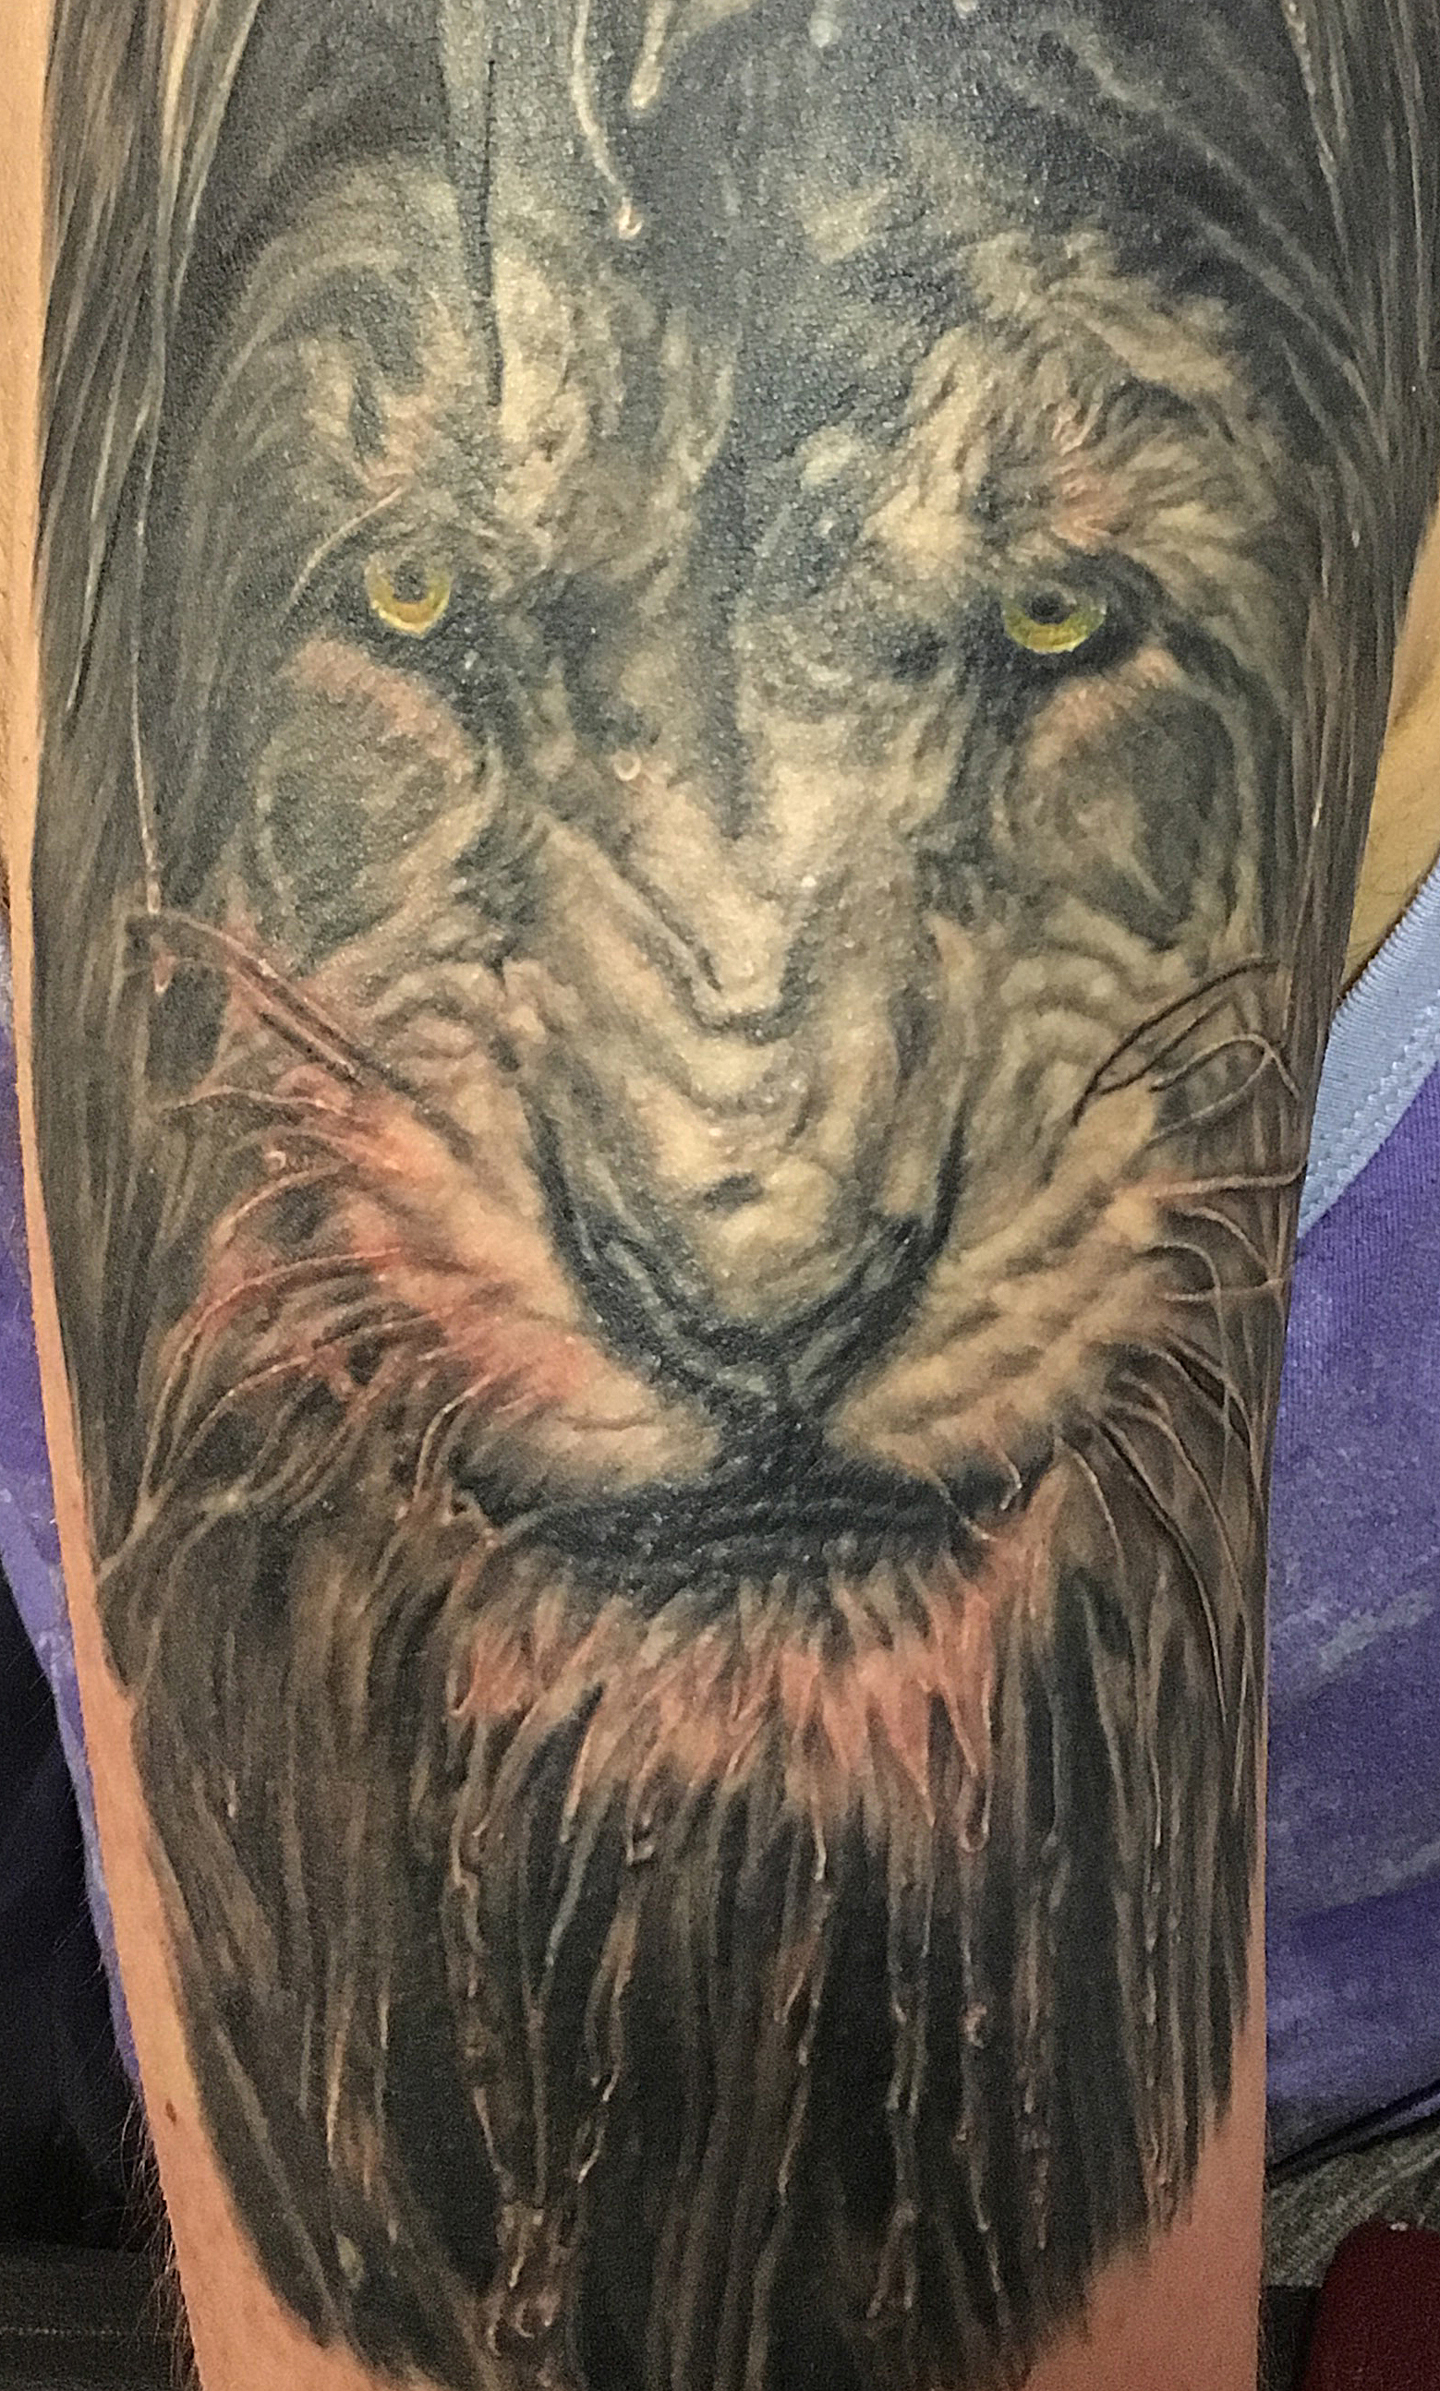 Black and Grey Wet Lion Portrait Tattoo, with green eyes, detail zoom